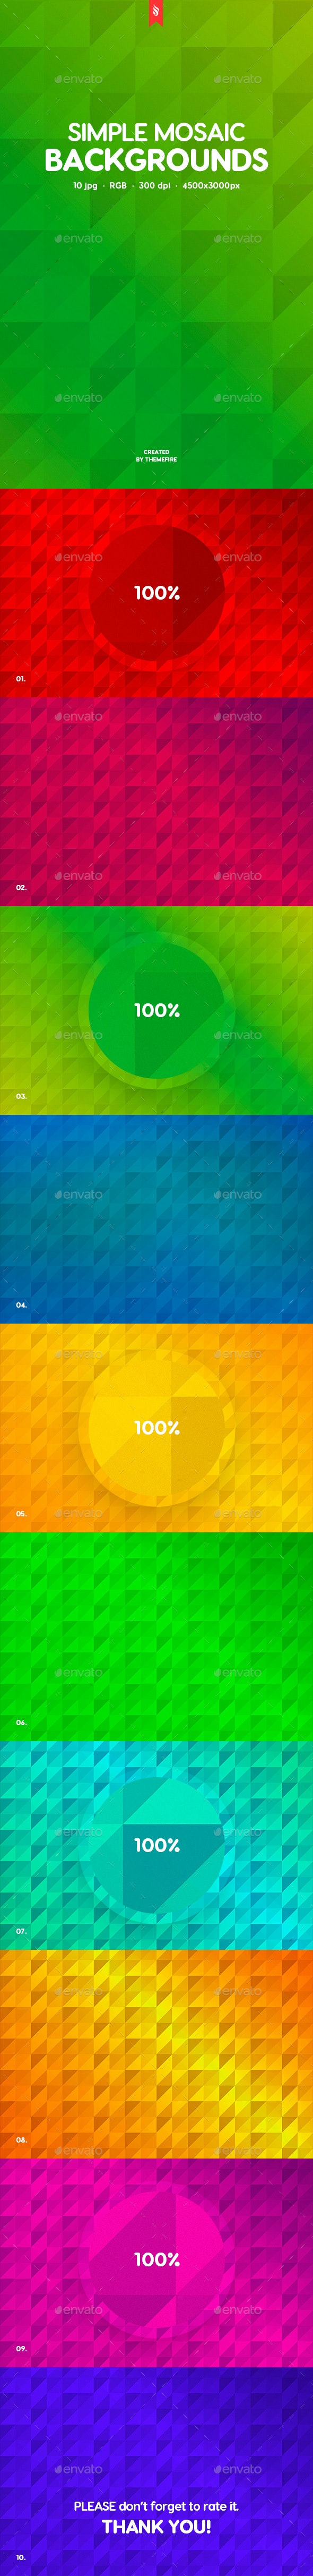 Simple Mosaic Backgrounds - Patterns Backgrounds